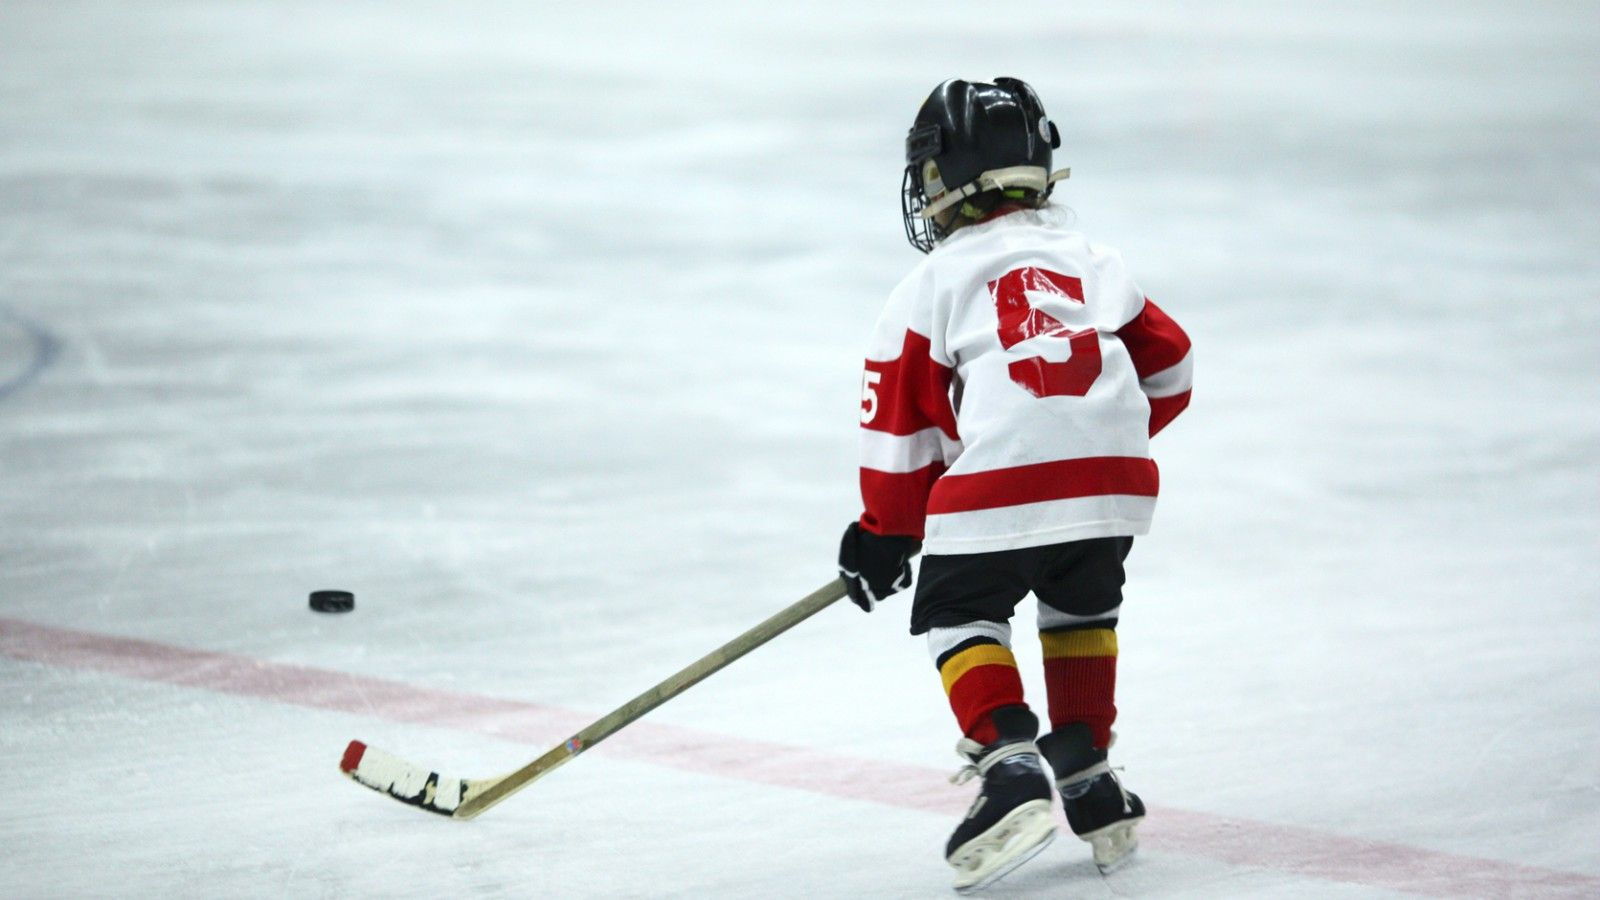 Calgary Sports Team Hotel - Kids Hockey